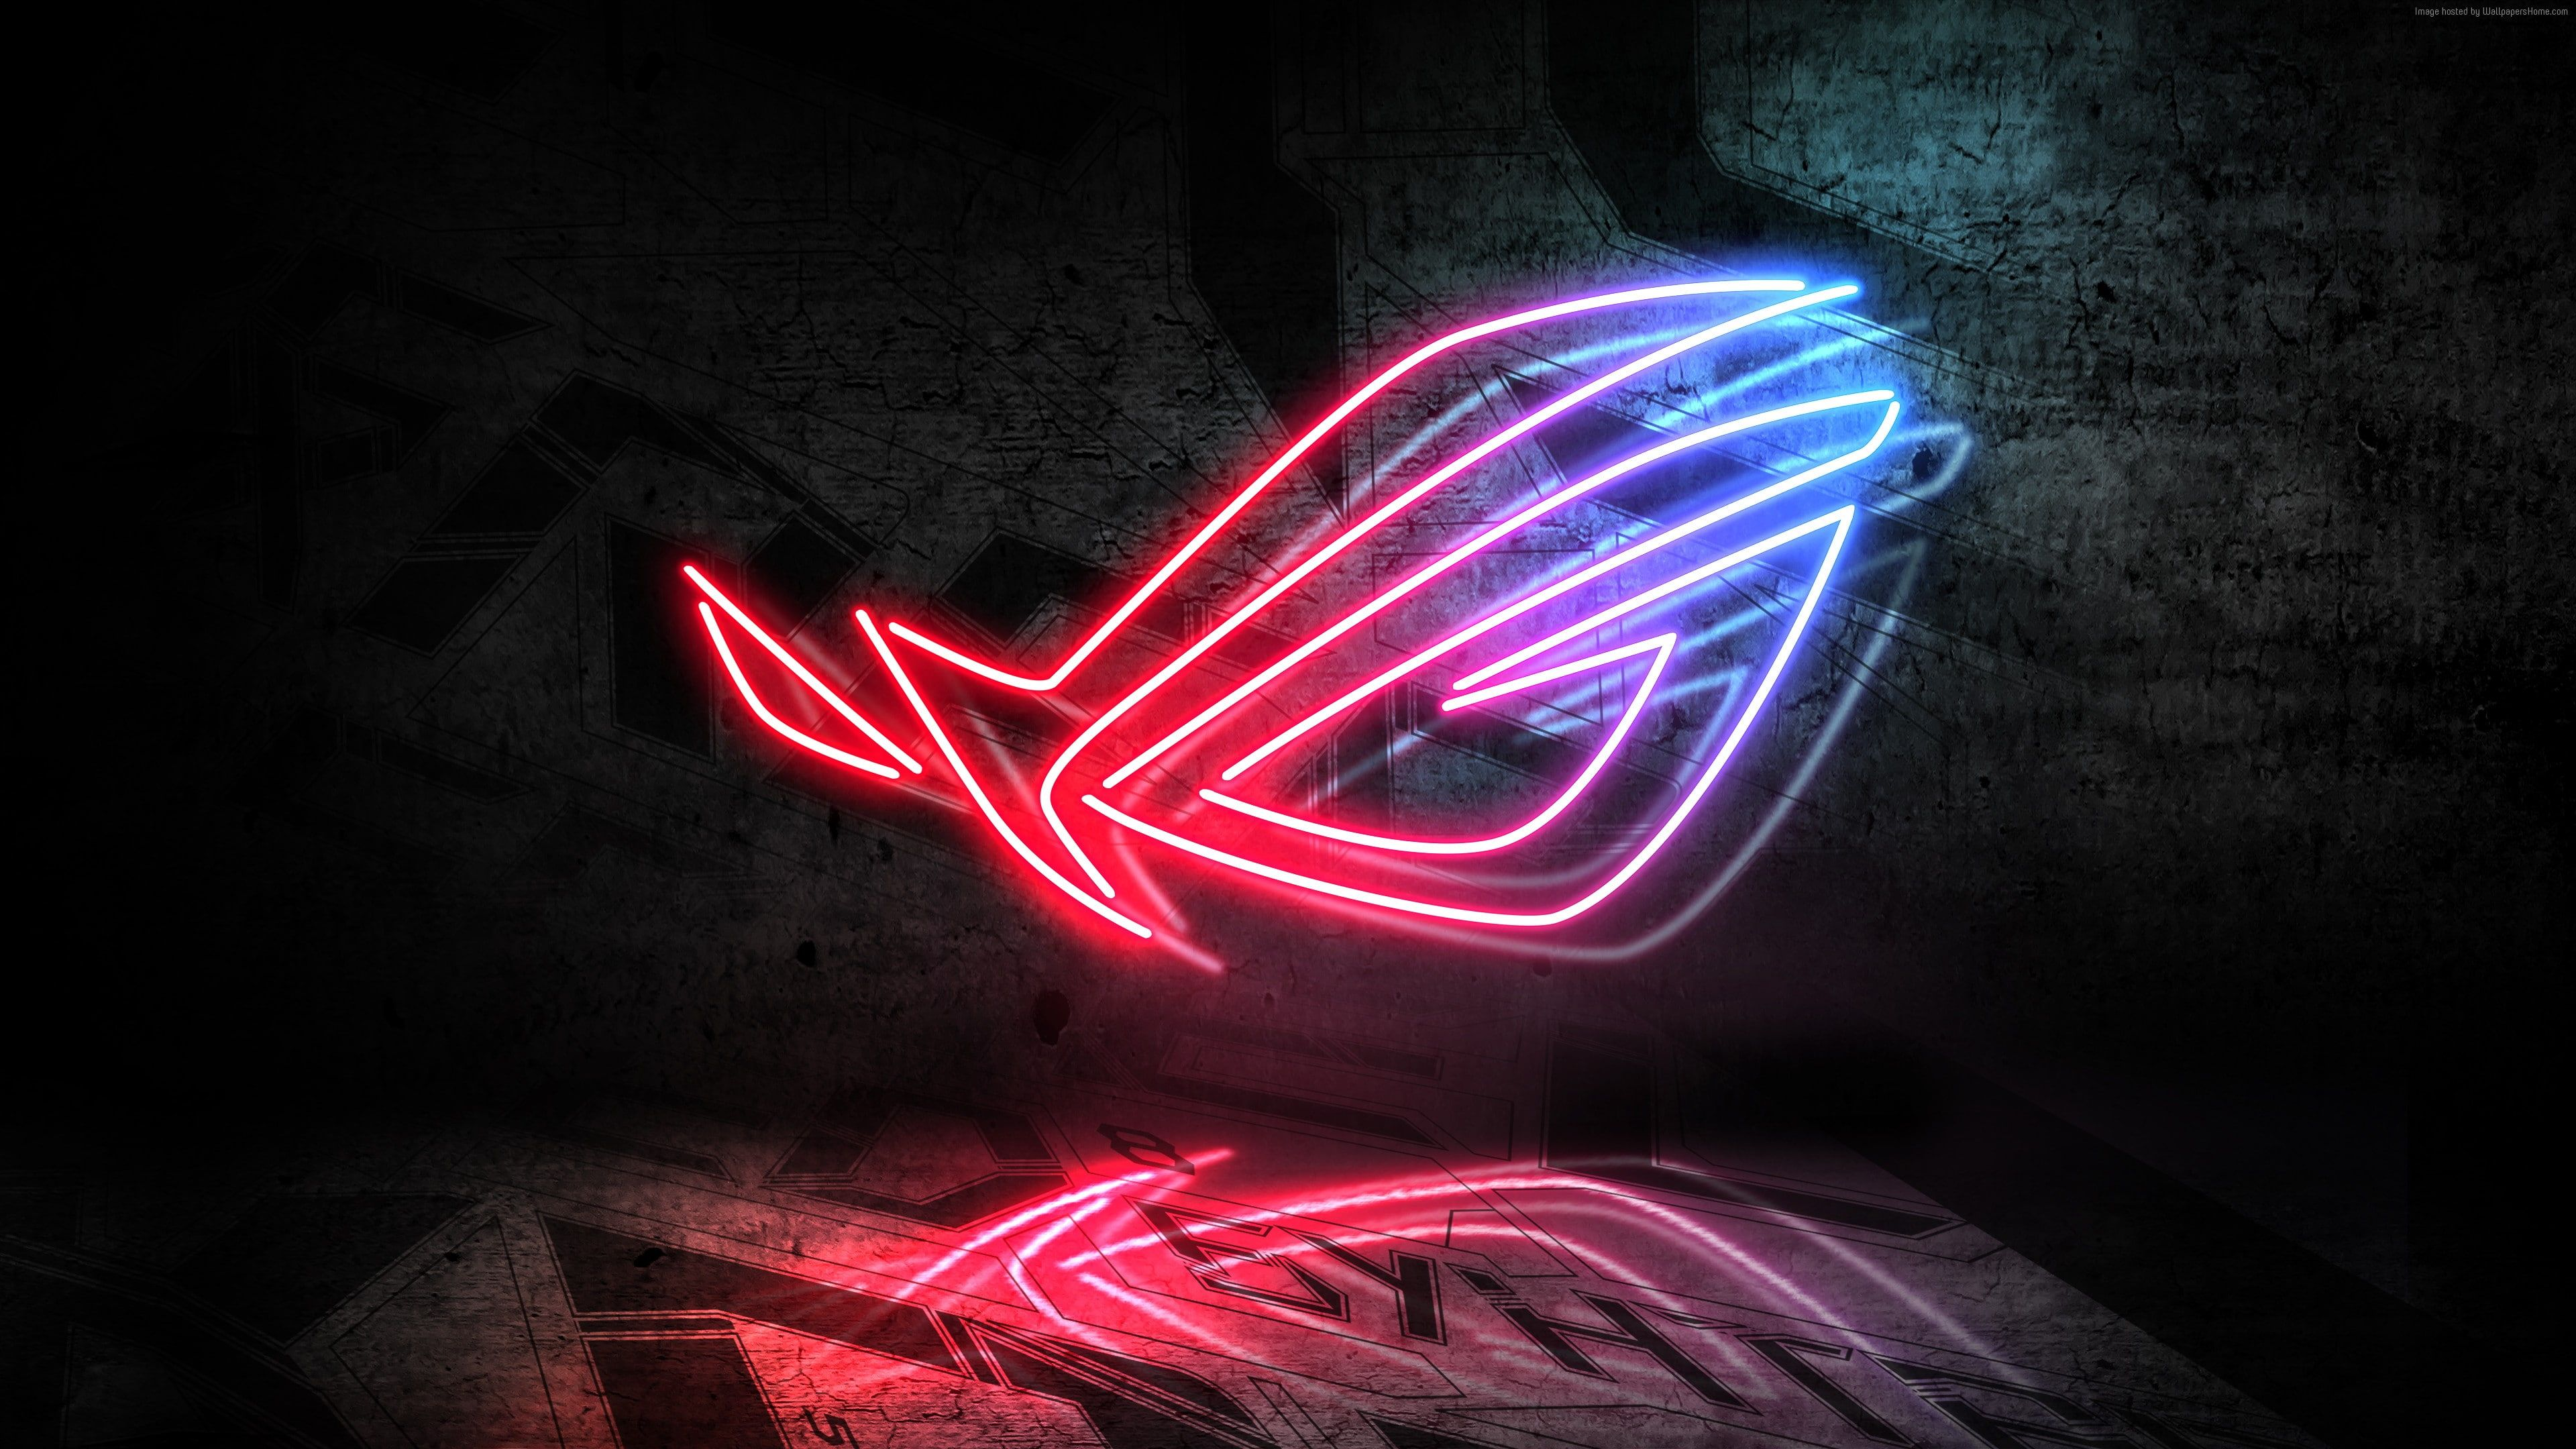 Neon ASUS 4K RoG 4K Wallpaper Hdwallpaper Desktop In